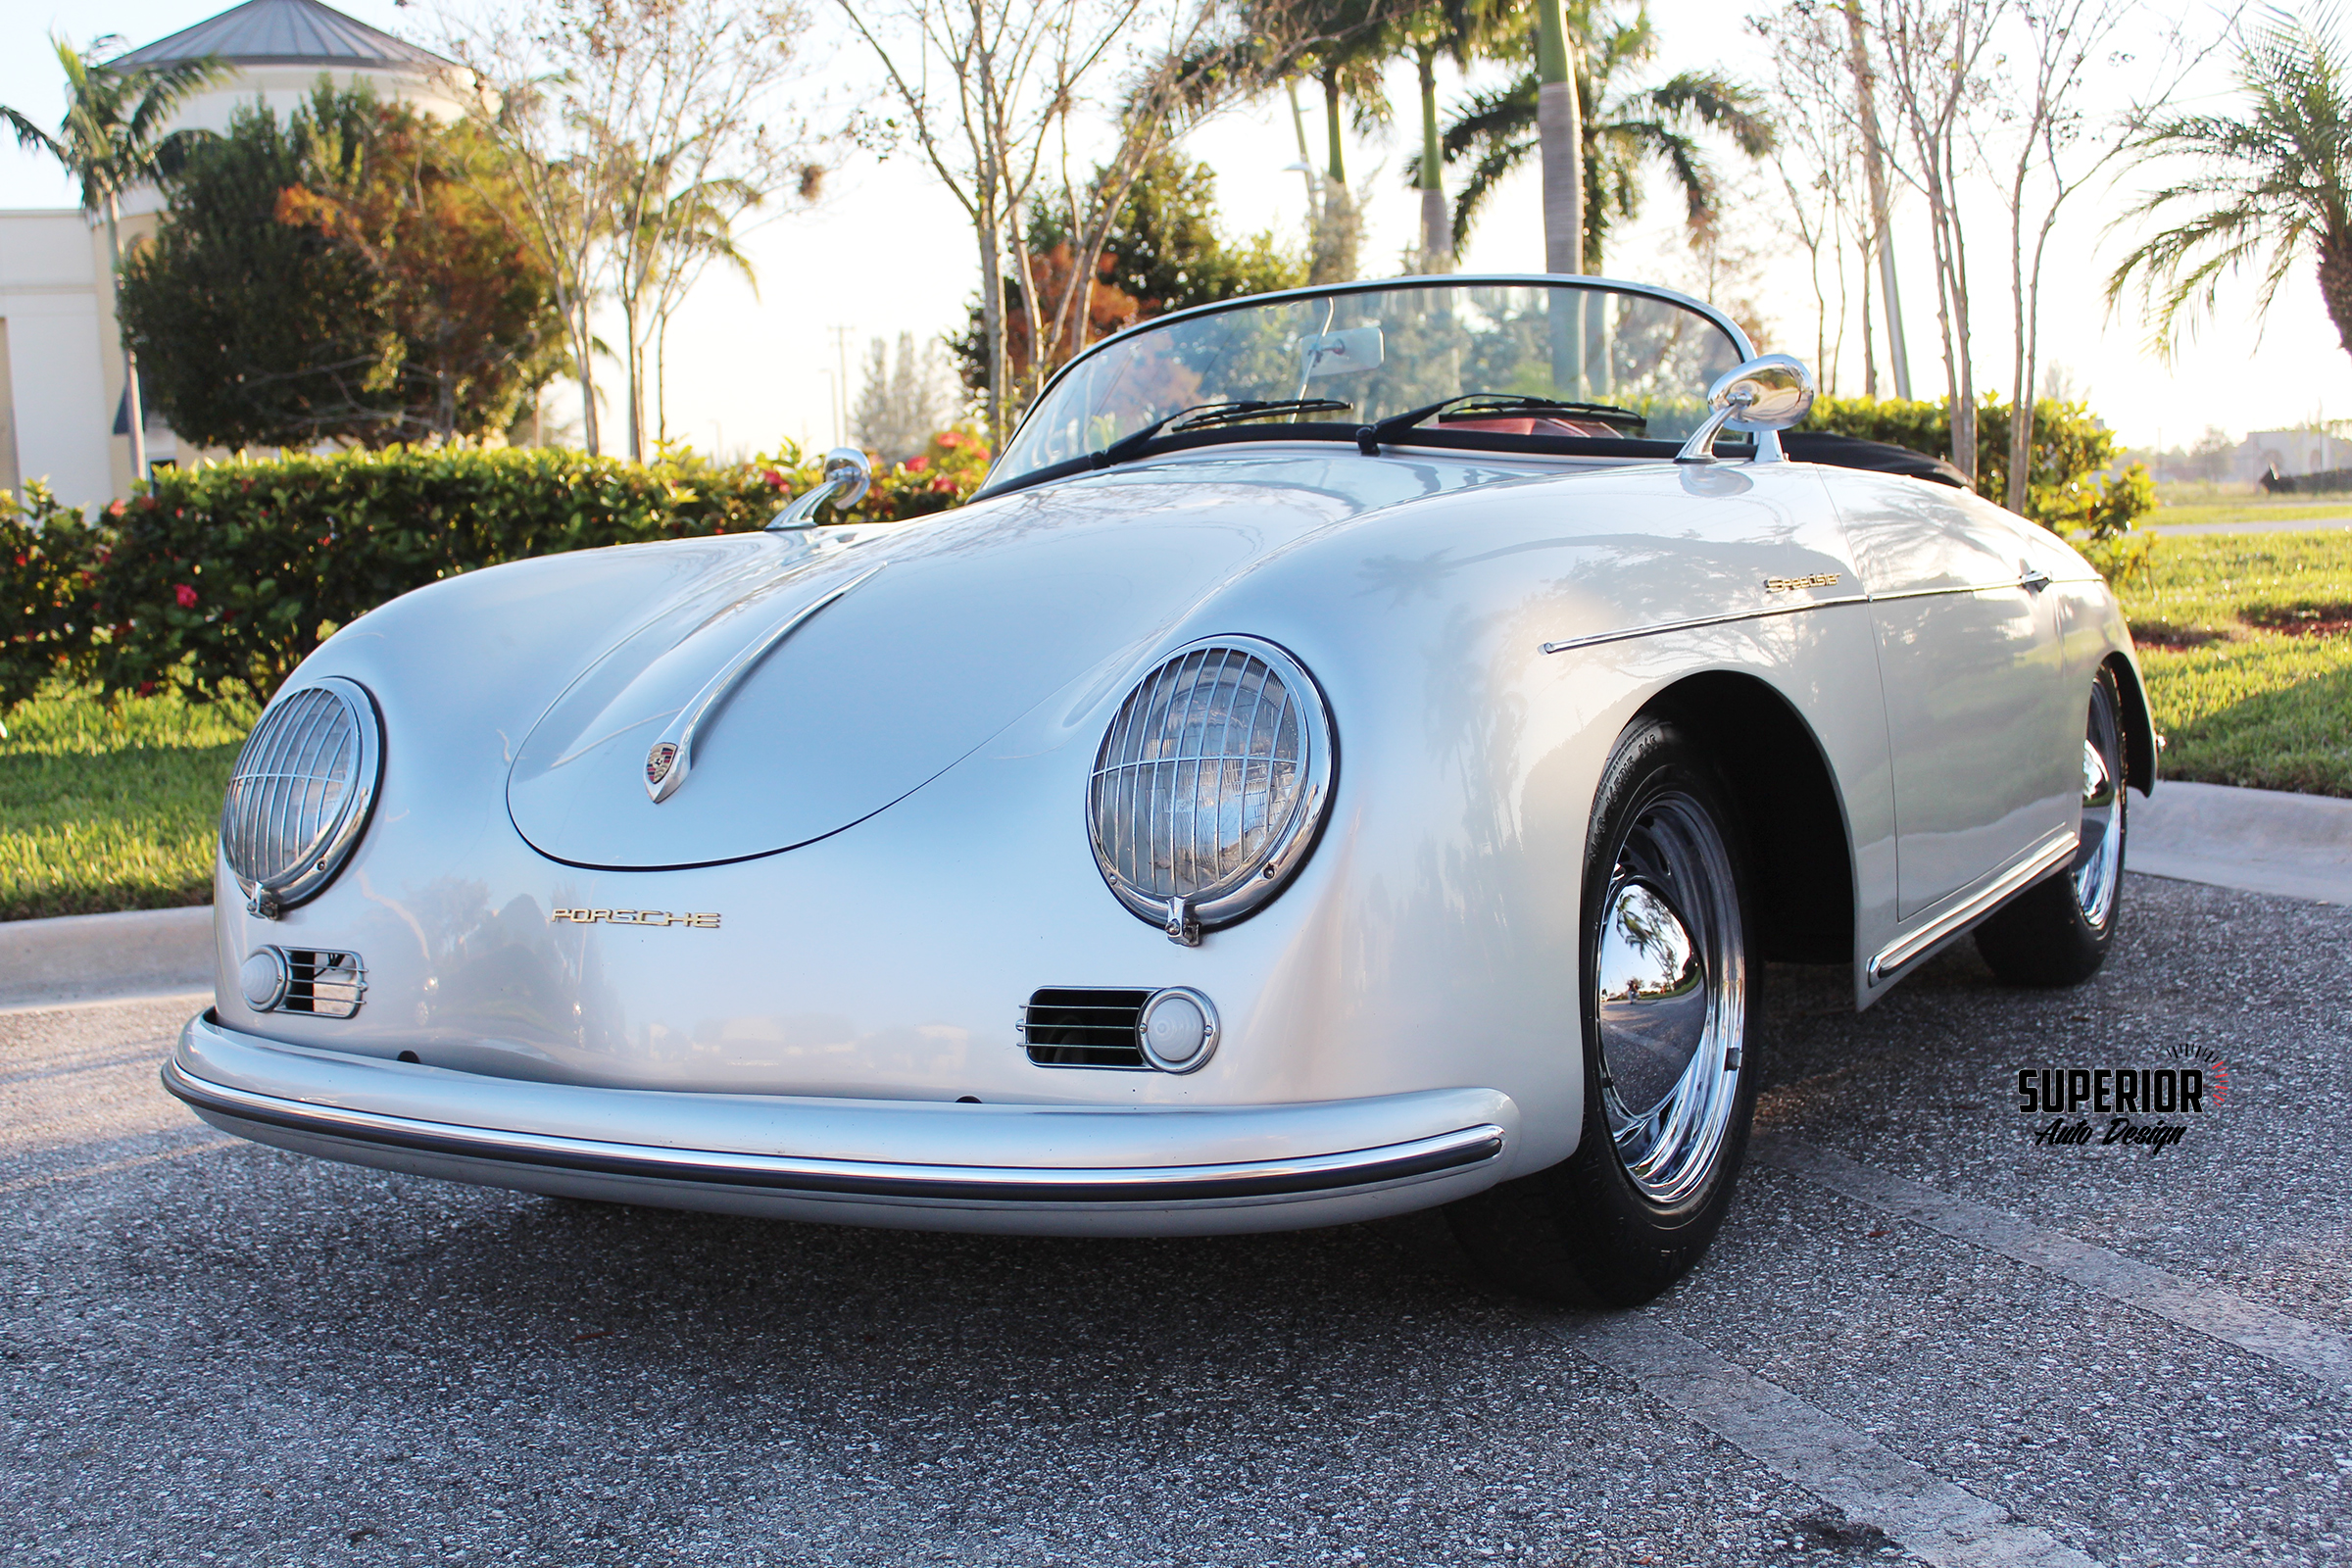 porsche-speedster-superior-auto-design-10